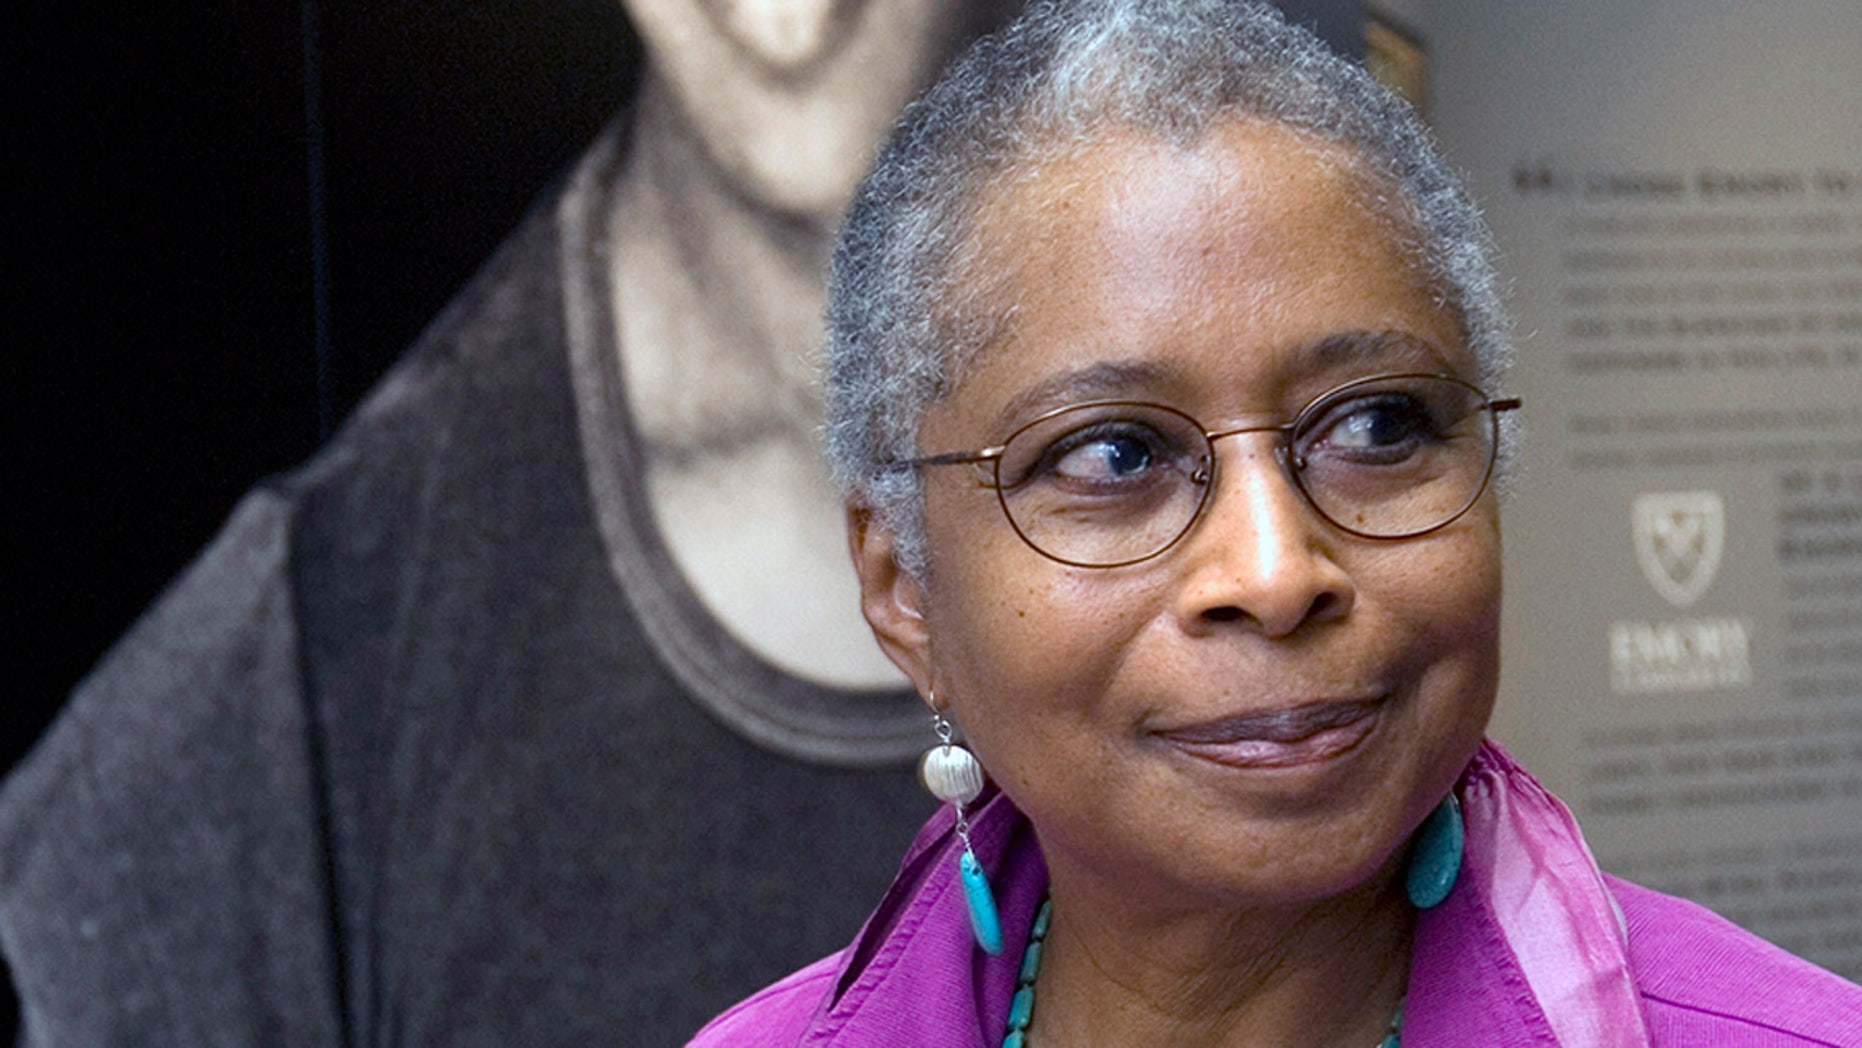 FILE - In this April 23, 2009 file photo, Alice Walker stands in front of a picture of herself from 1974 as she tours her archives at Emory University, in Atlanta. (AP Photo/John Amis, File)